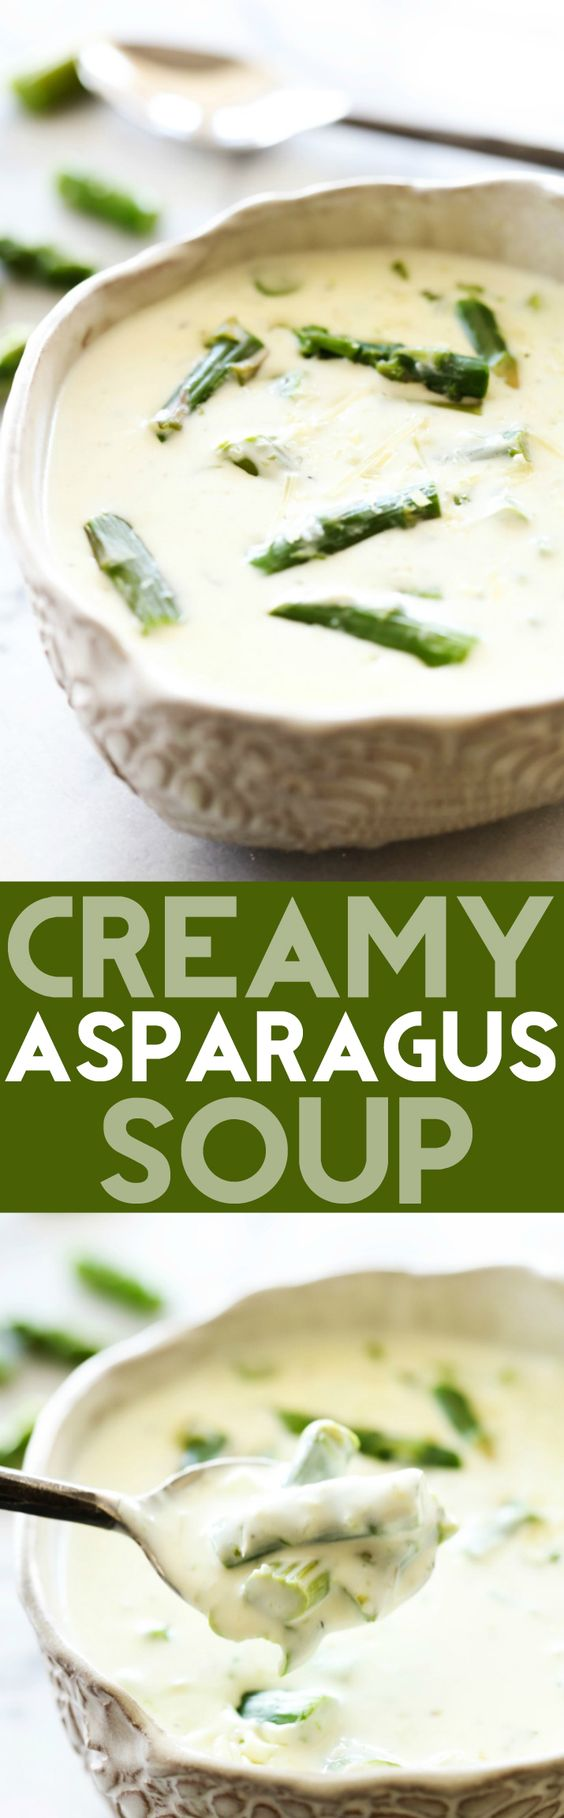 Read more, Asparagus and Asparagus soup on Pinterest